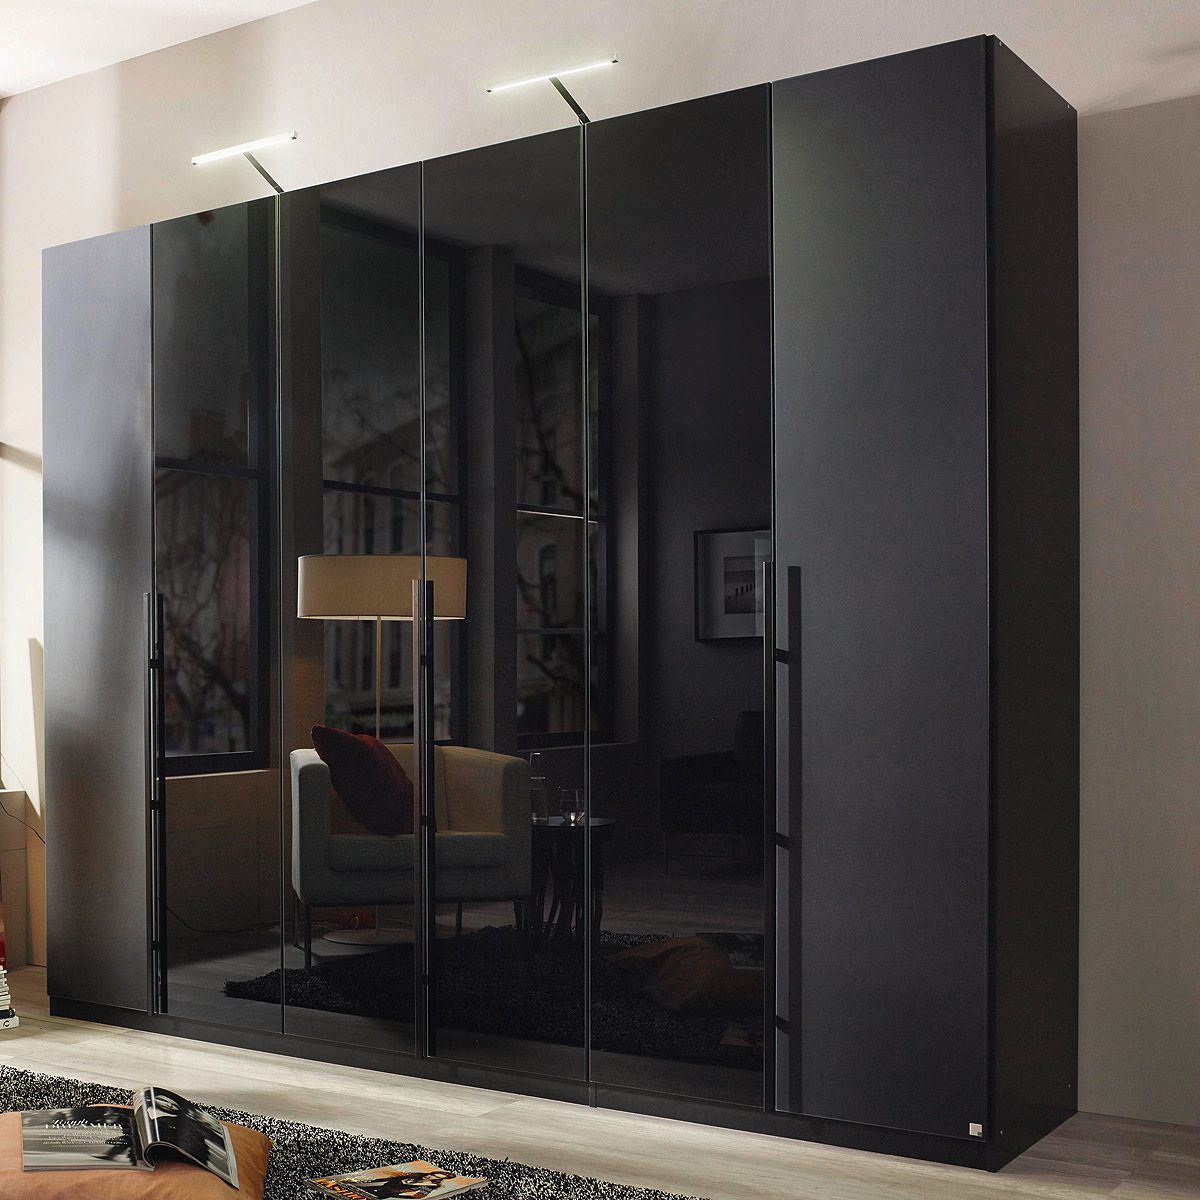 kleiderschrank bayamo schrank schlafzimmer glas matt schwarz glas schwarz b 270 ebay. Black Bedroom Furniture Sets. Home Design Ideas